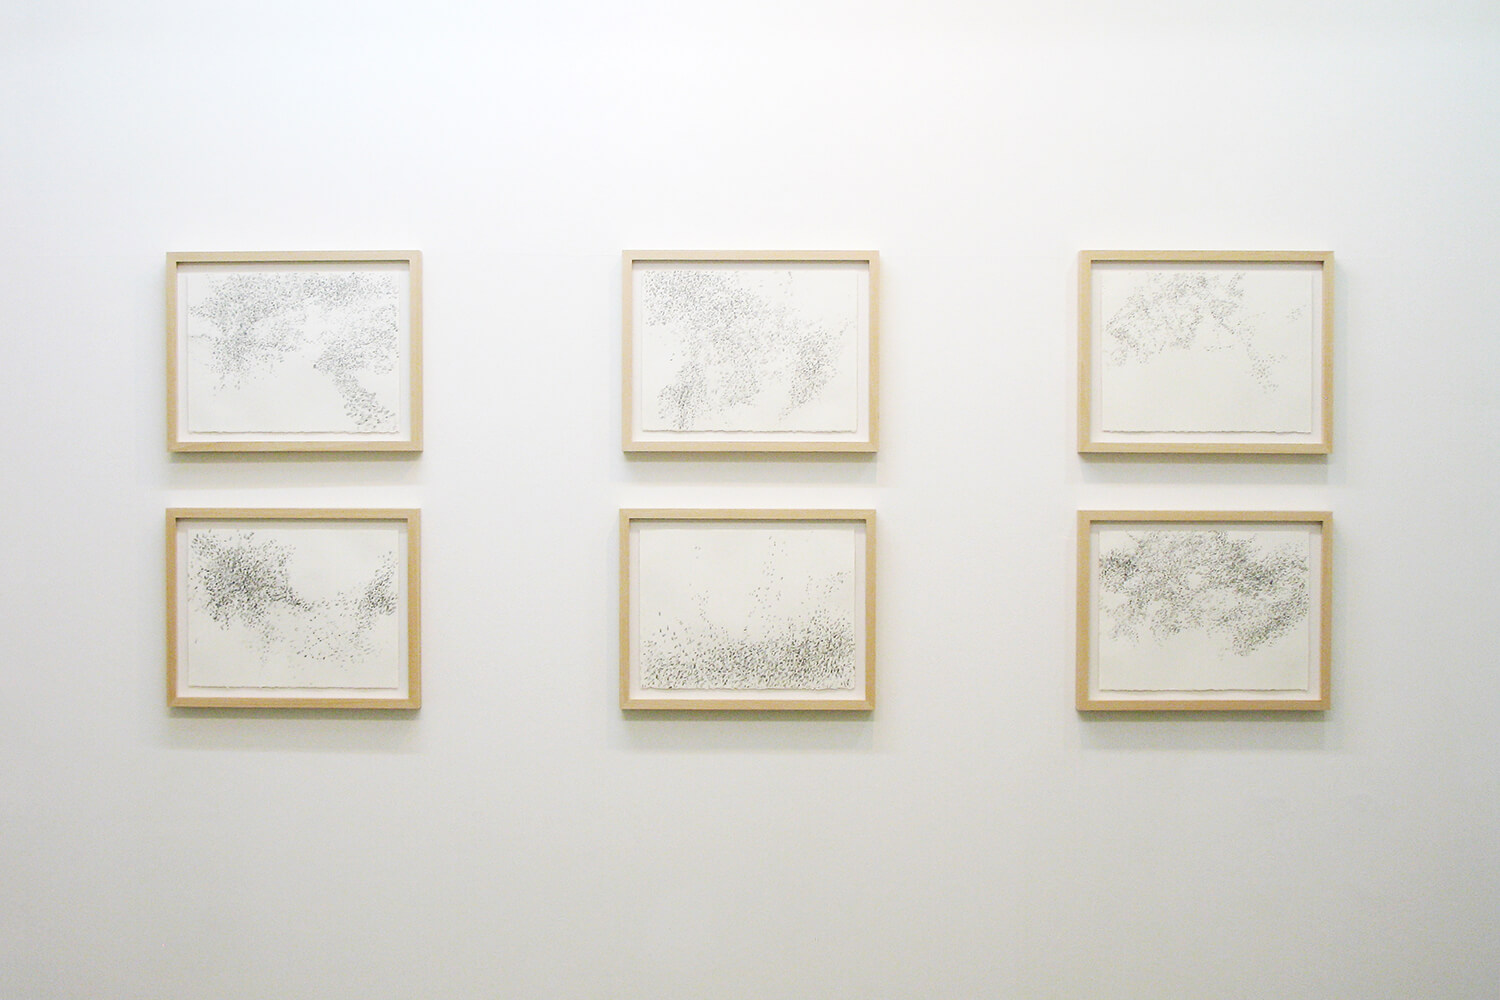 Installation View 8